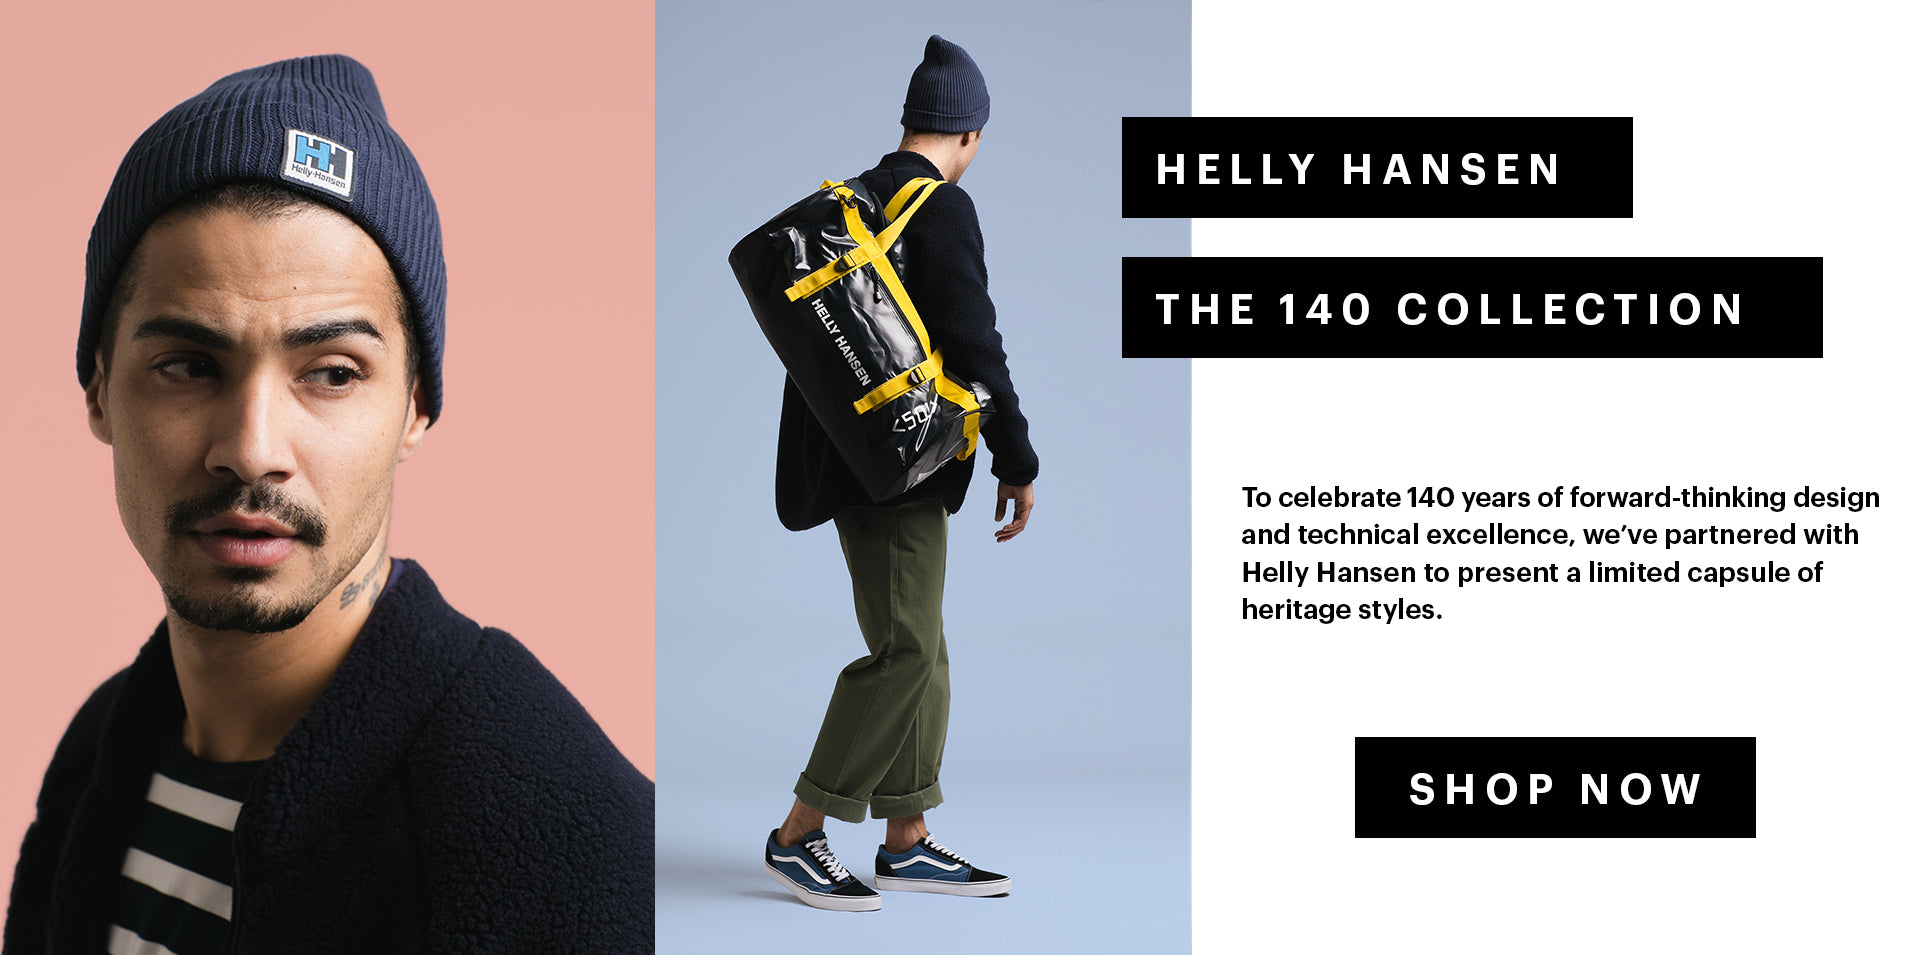 HELLY HANSEN THE 140 COLLECTION